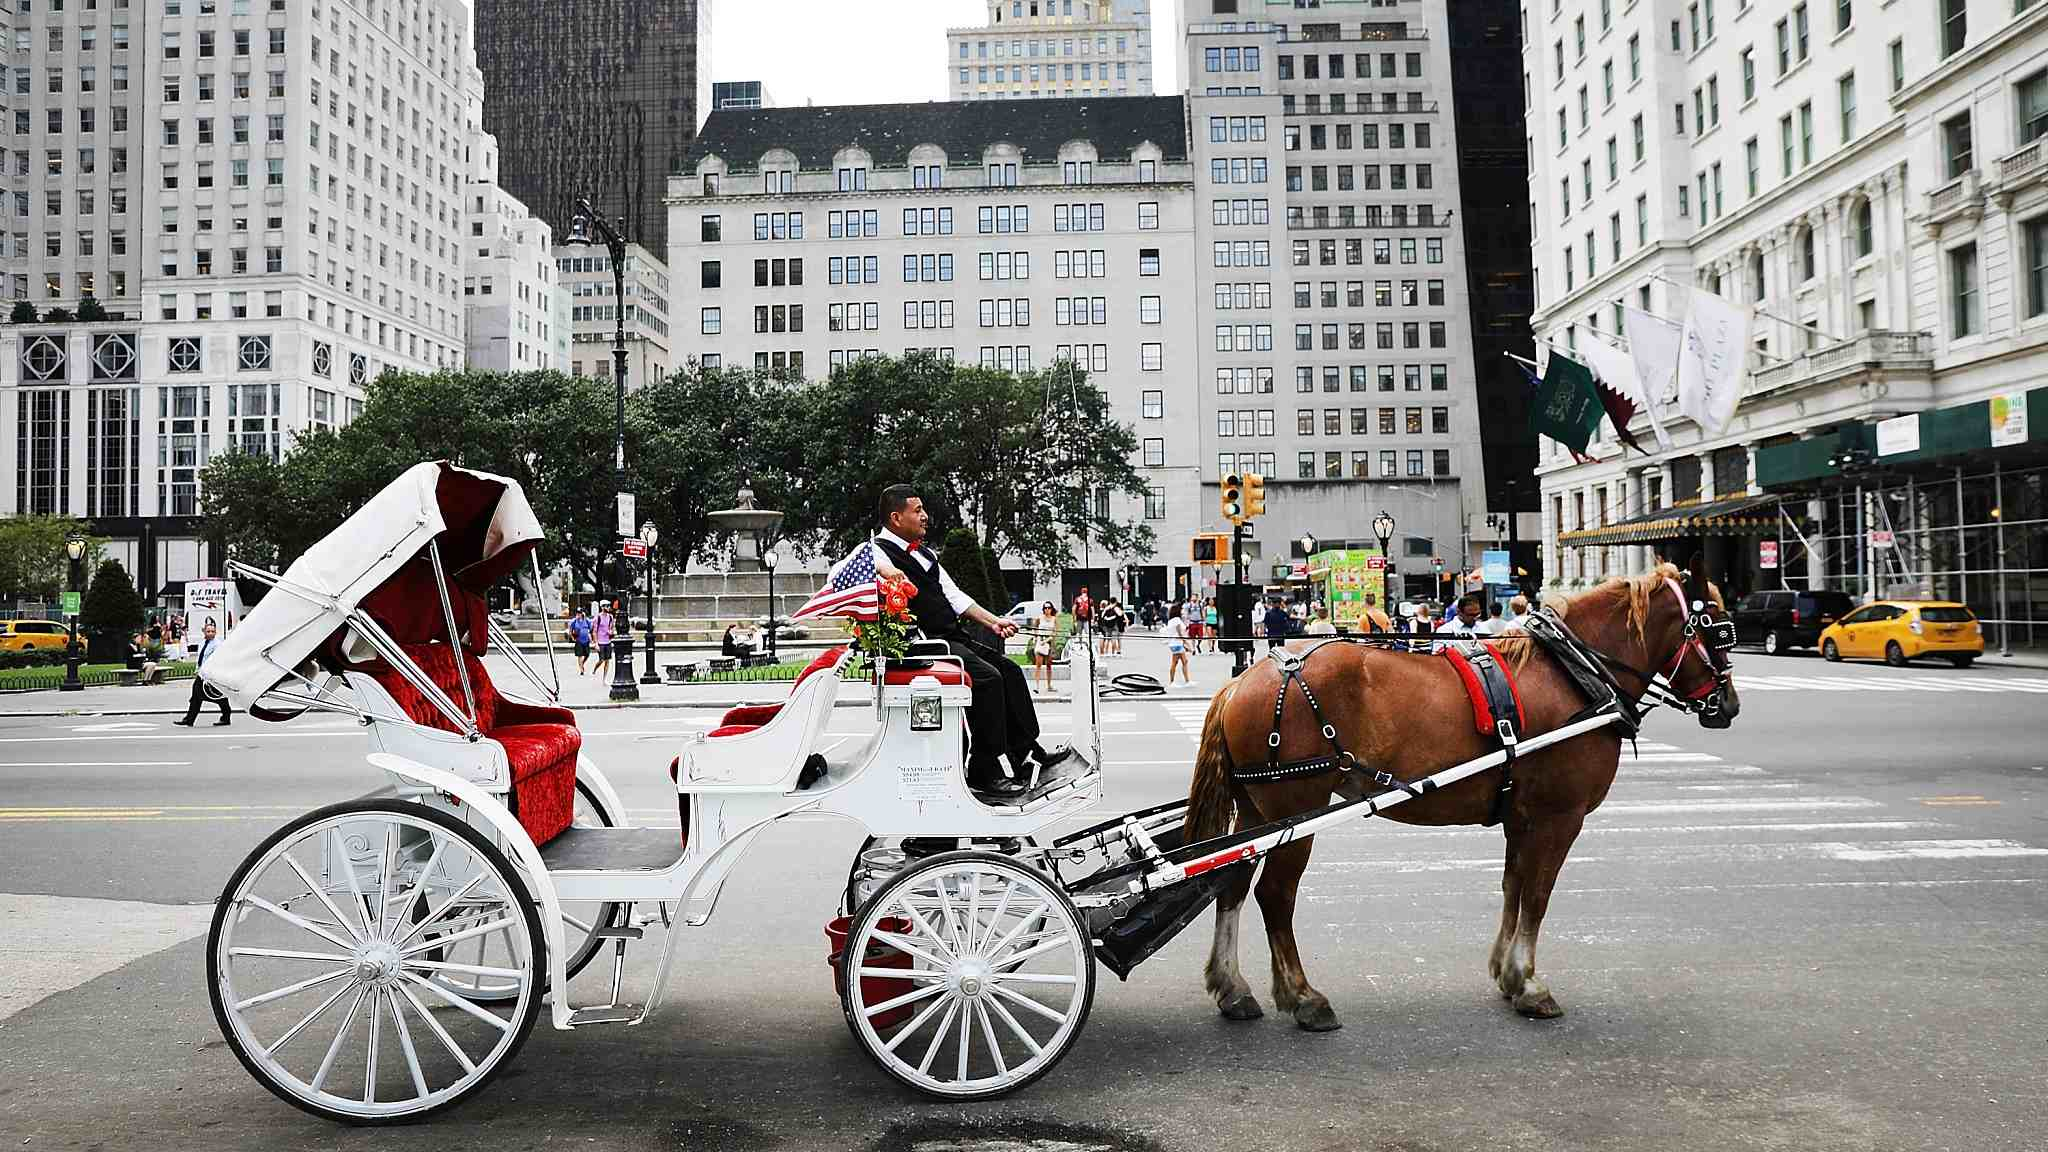 Carriage horses in NYC get a reprieve after heatwave